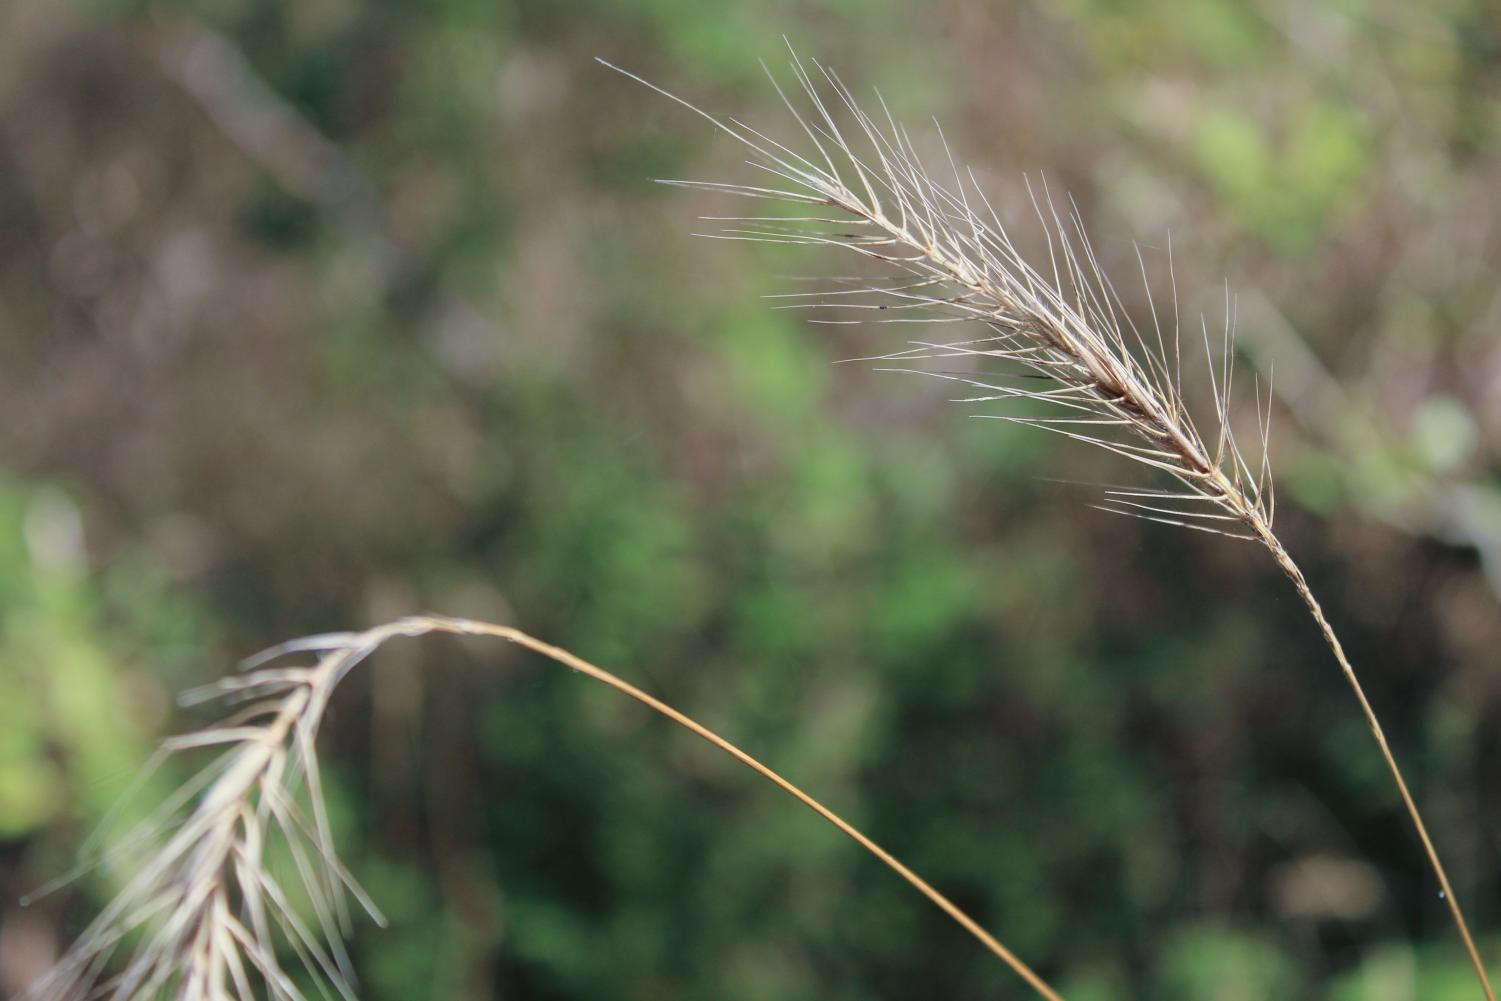 Phragmites, a non-native species of grass, will soon be removed from OU's Biological Preserves.